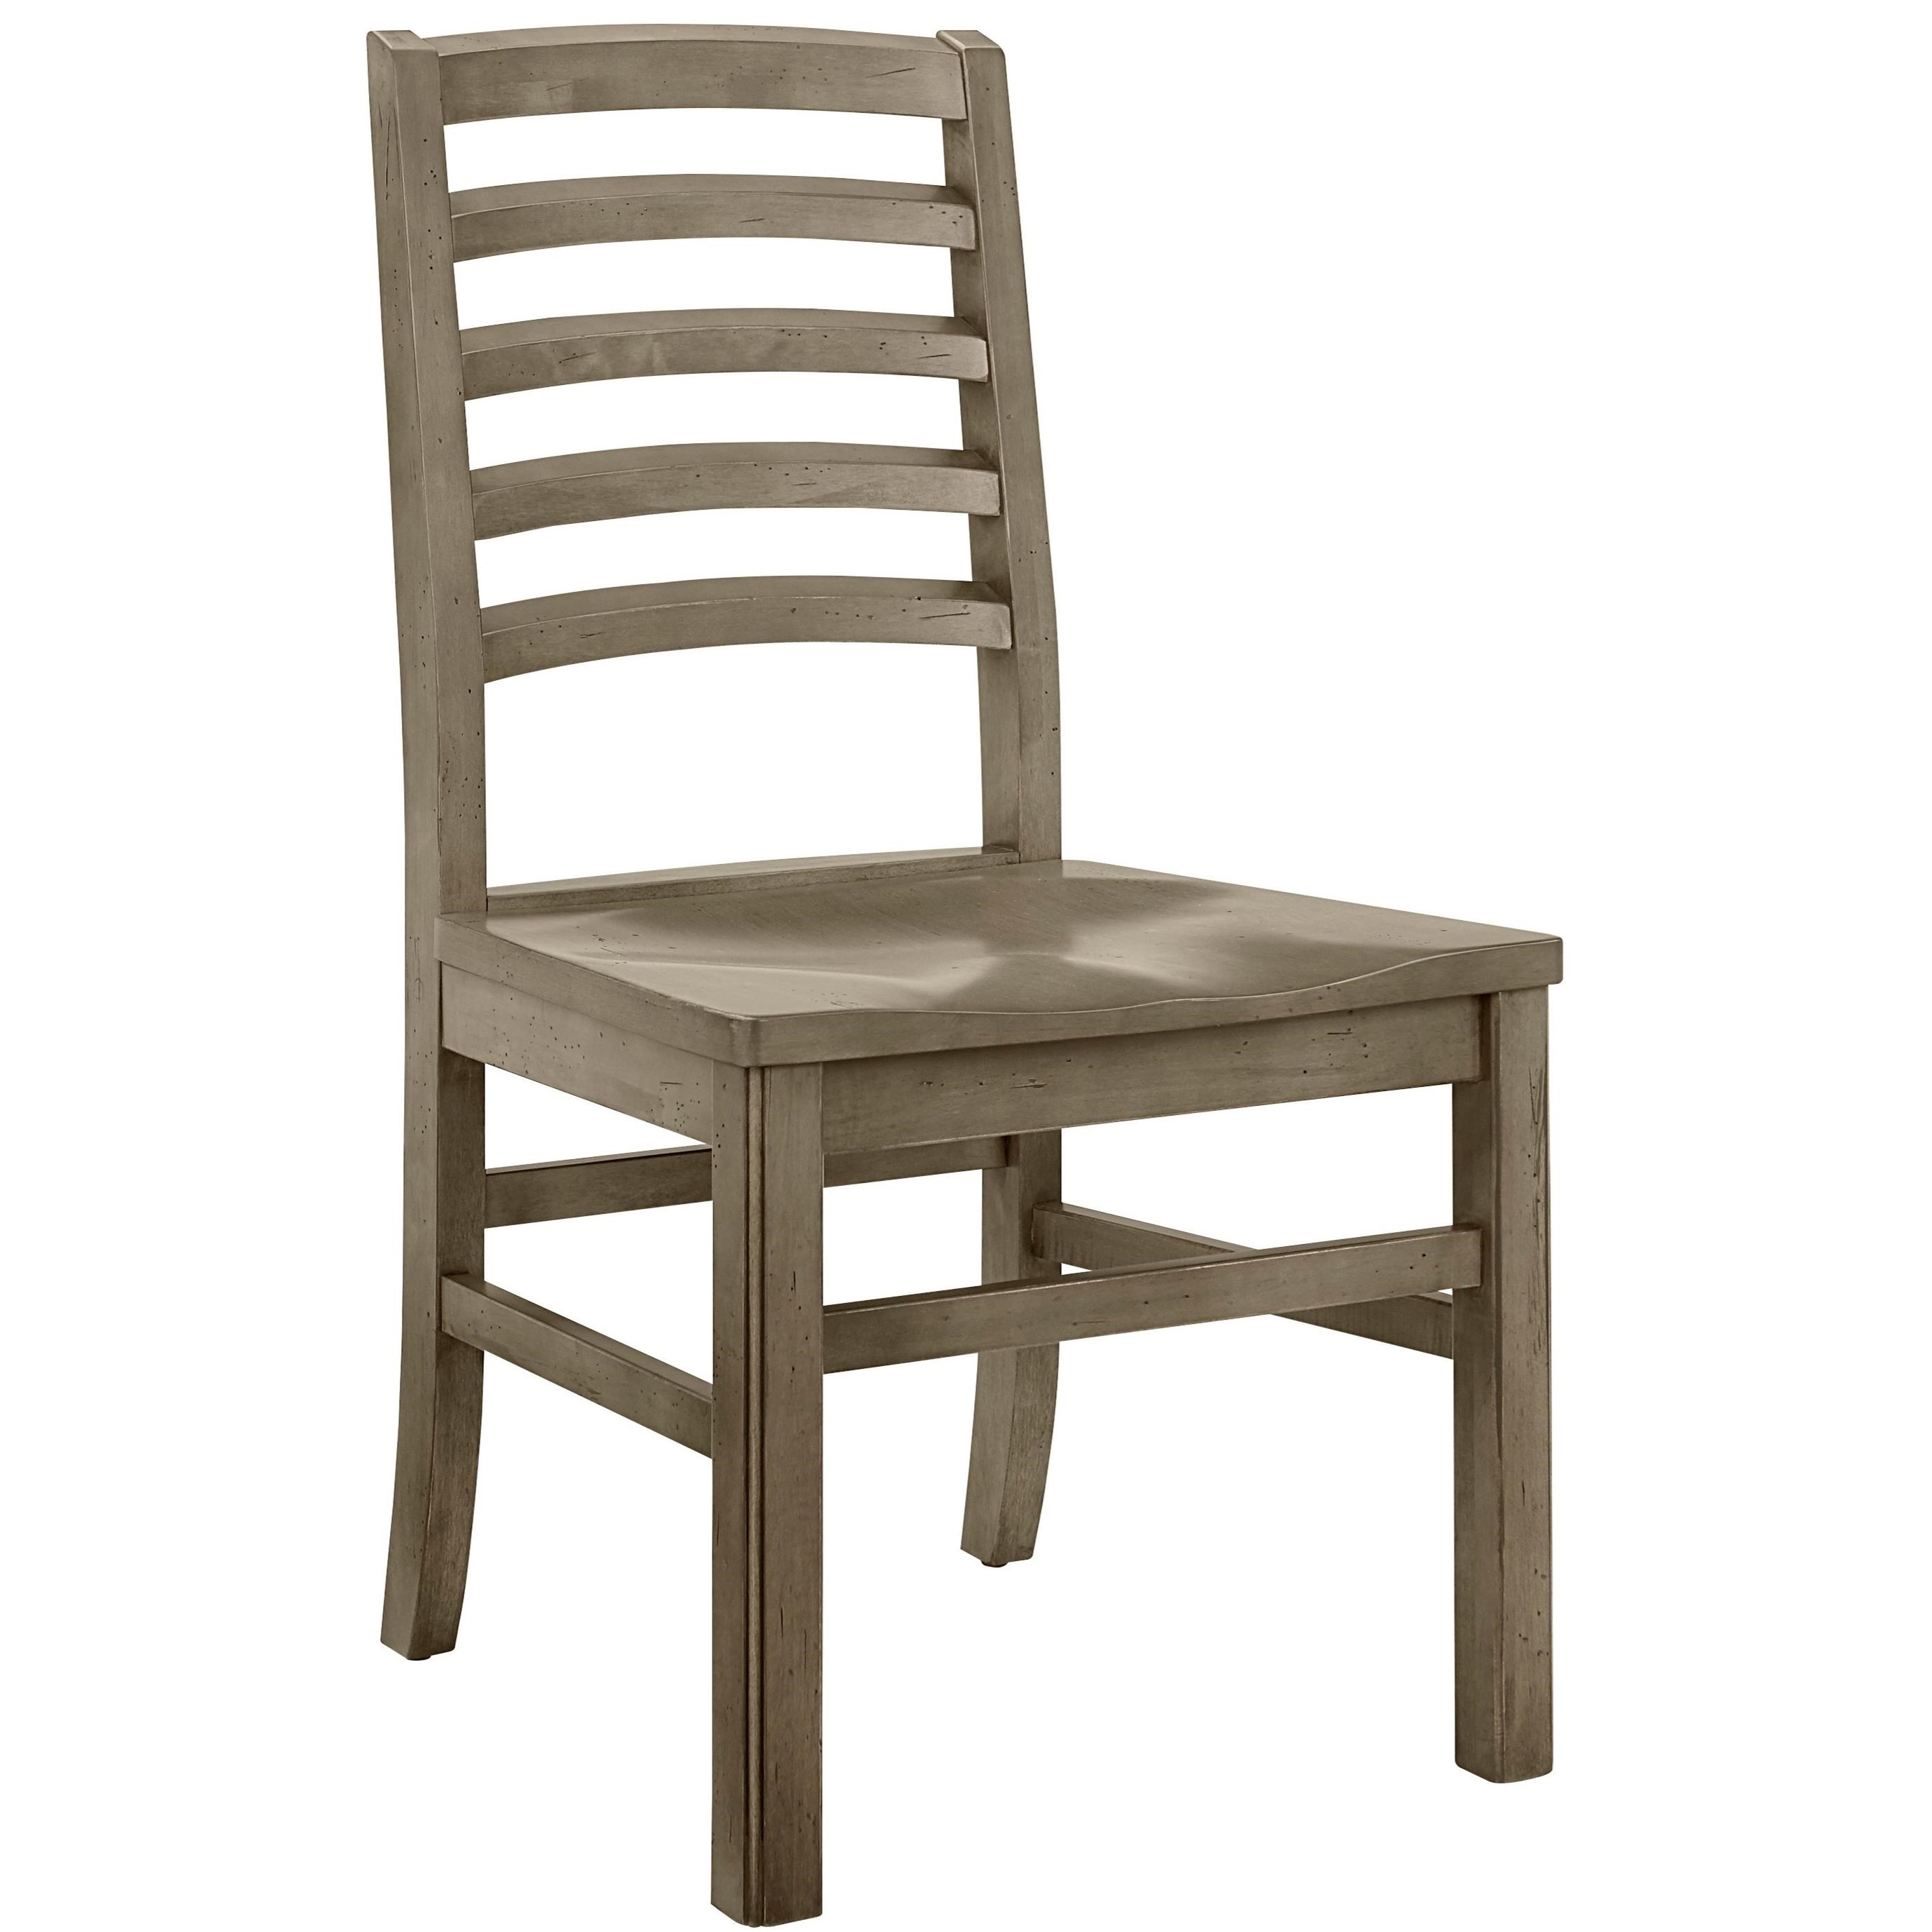 Simply Dining-Maple Horizontal Slat Side Chair by Artisan & Post at Lapeer Furniture & Mattress Center